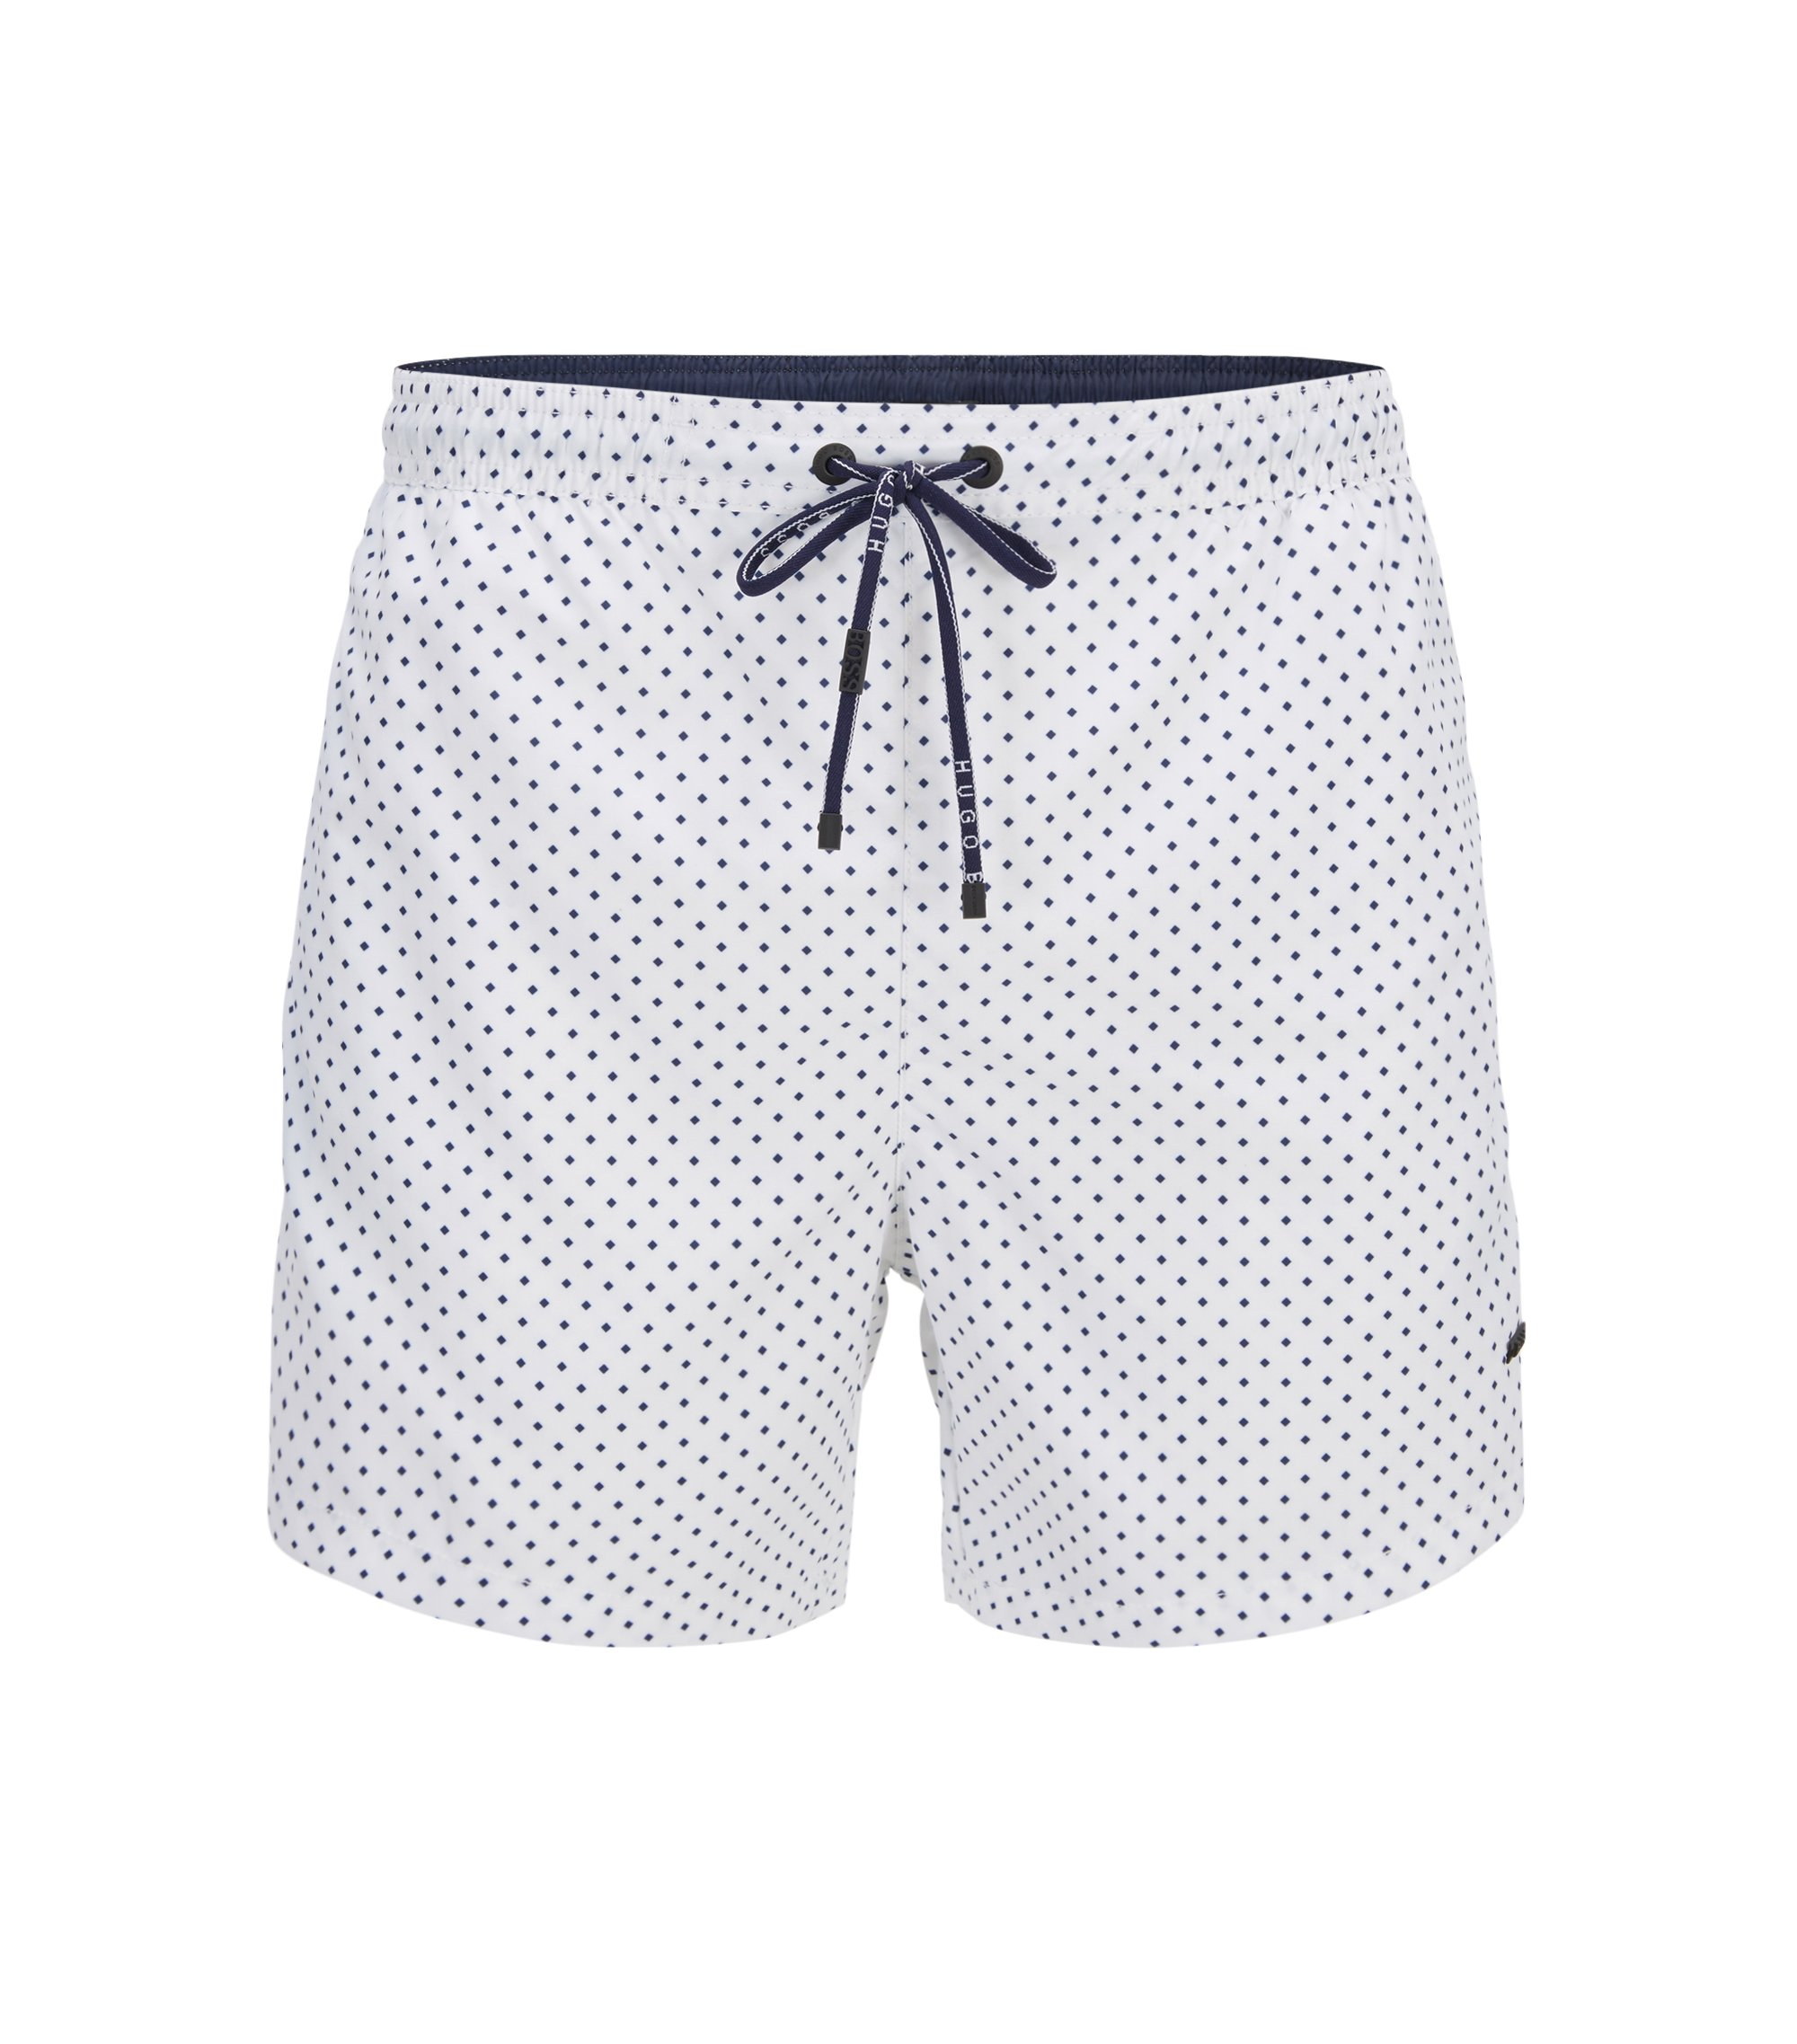 Micro-pattern swim shorts in quick-drying technical fabric, Open White